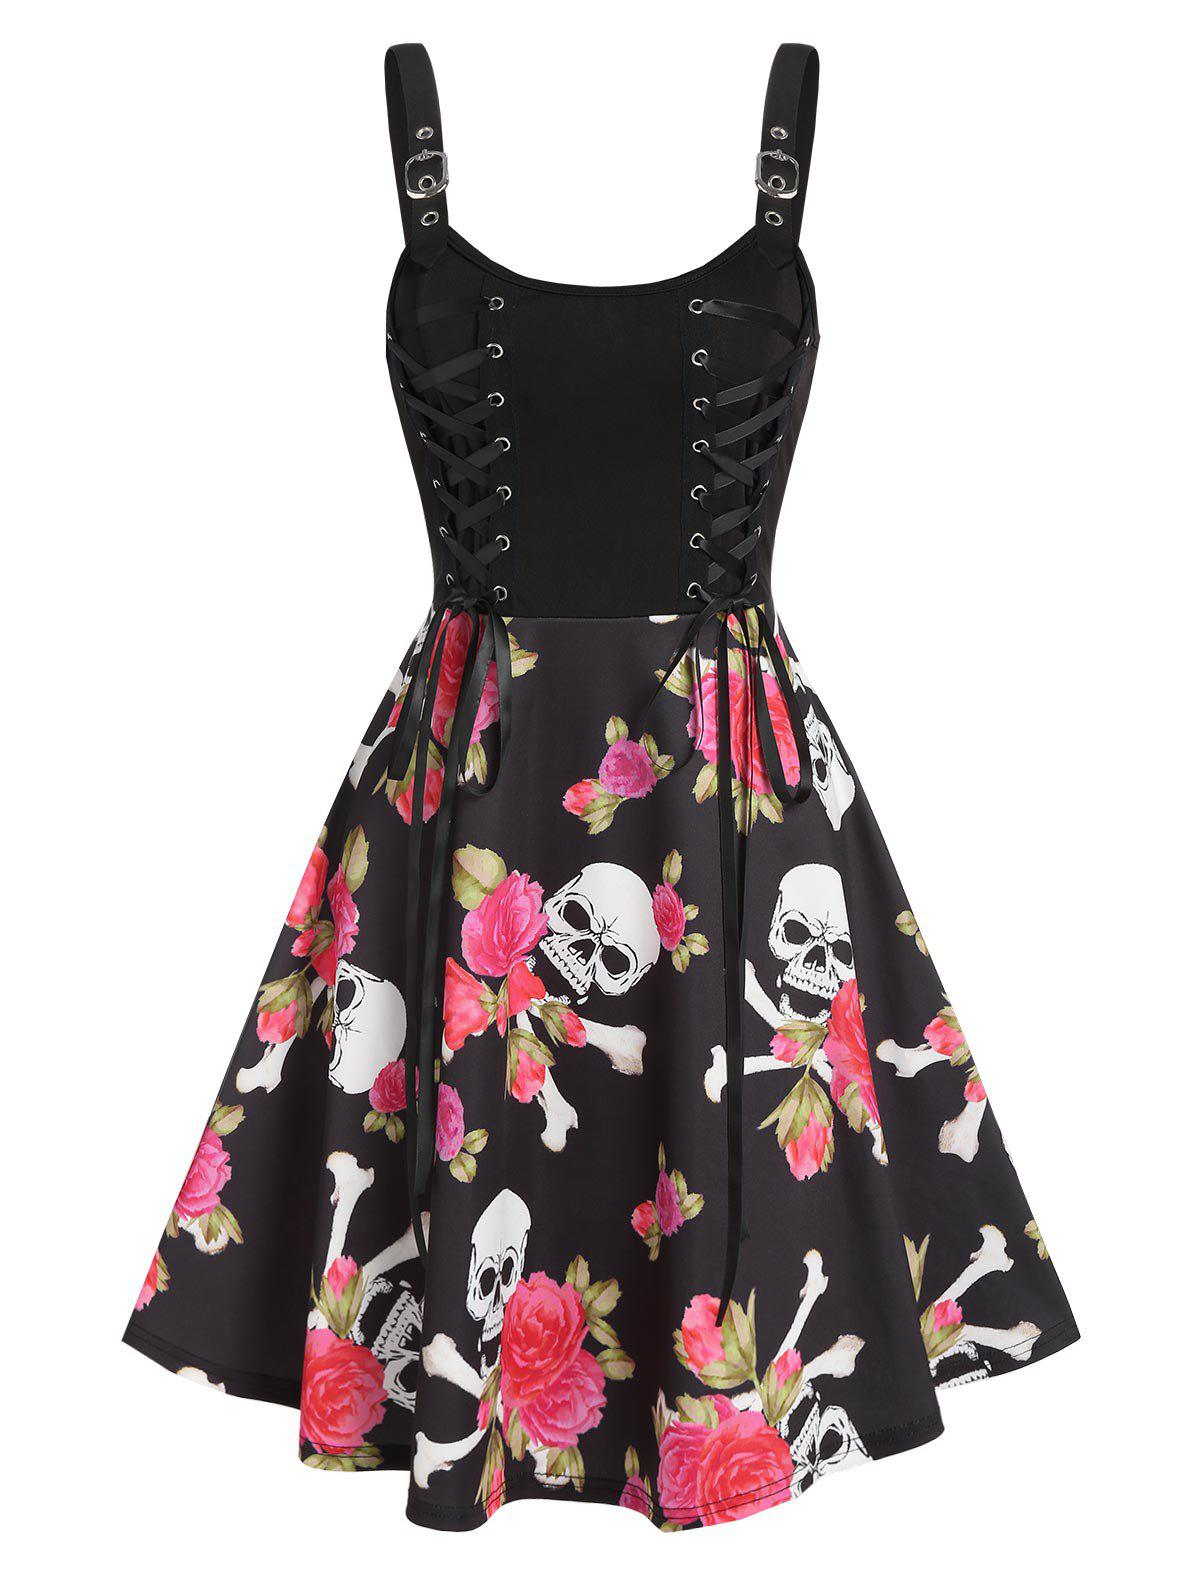 Latest Floral Skull Print Lace Up Mini Cami Dress